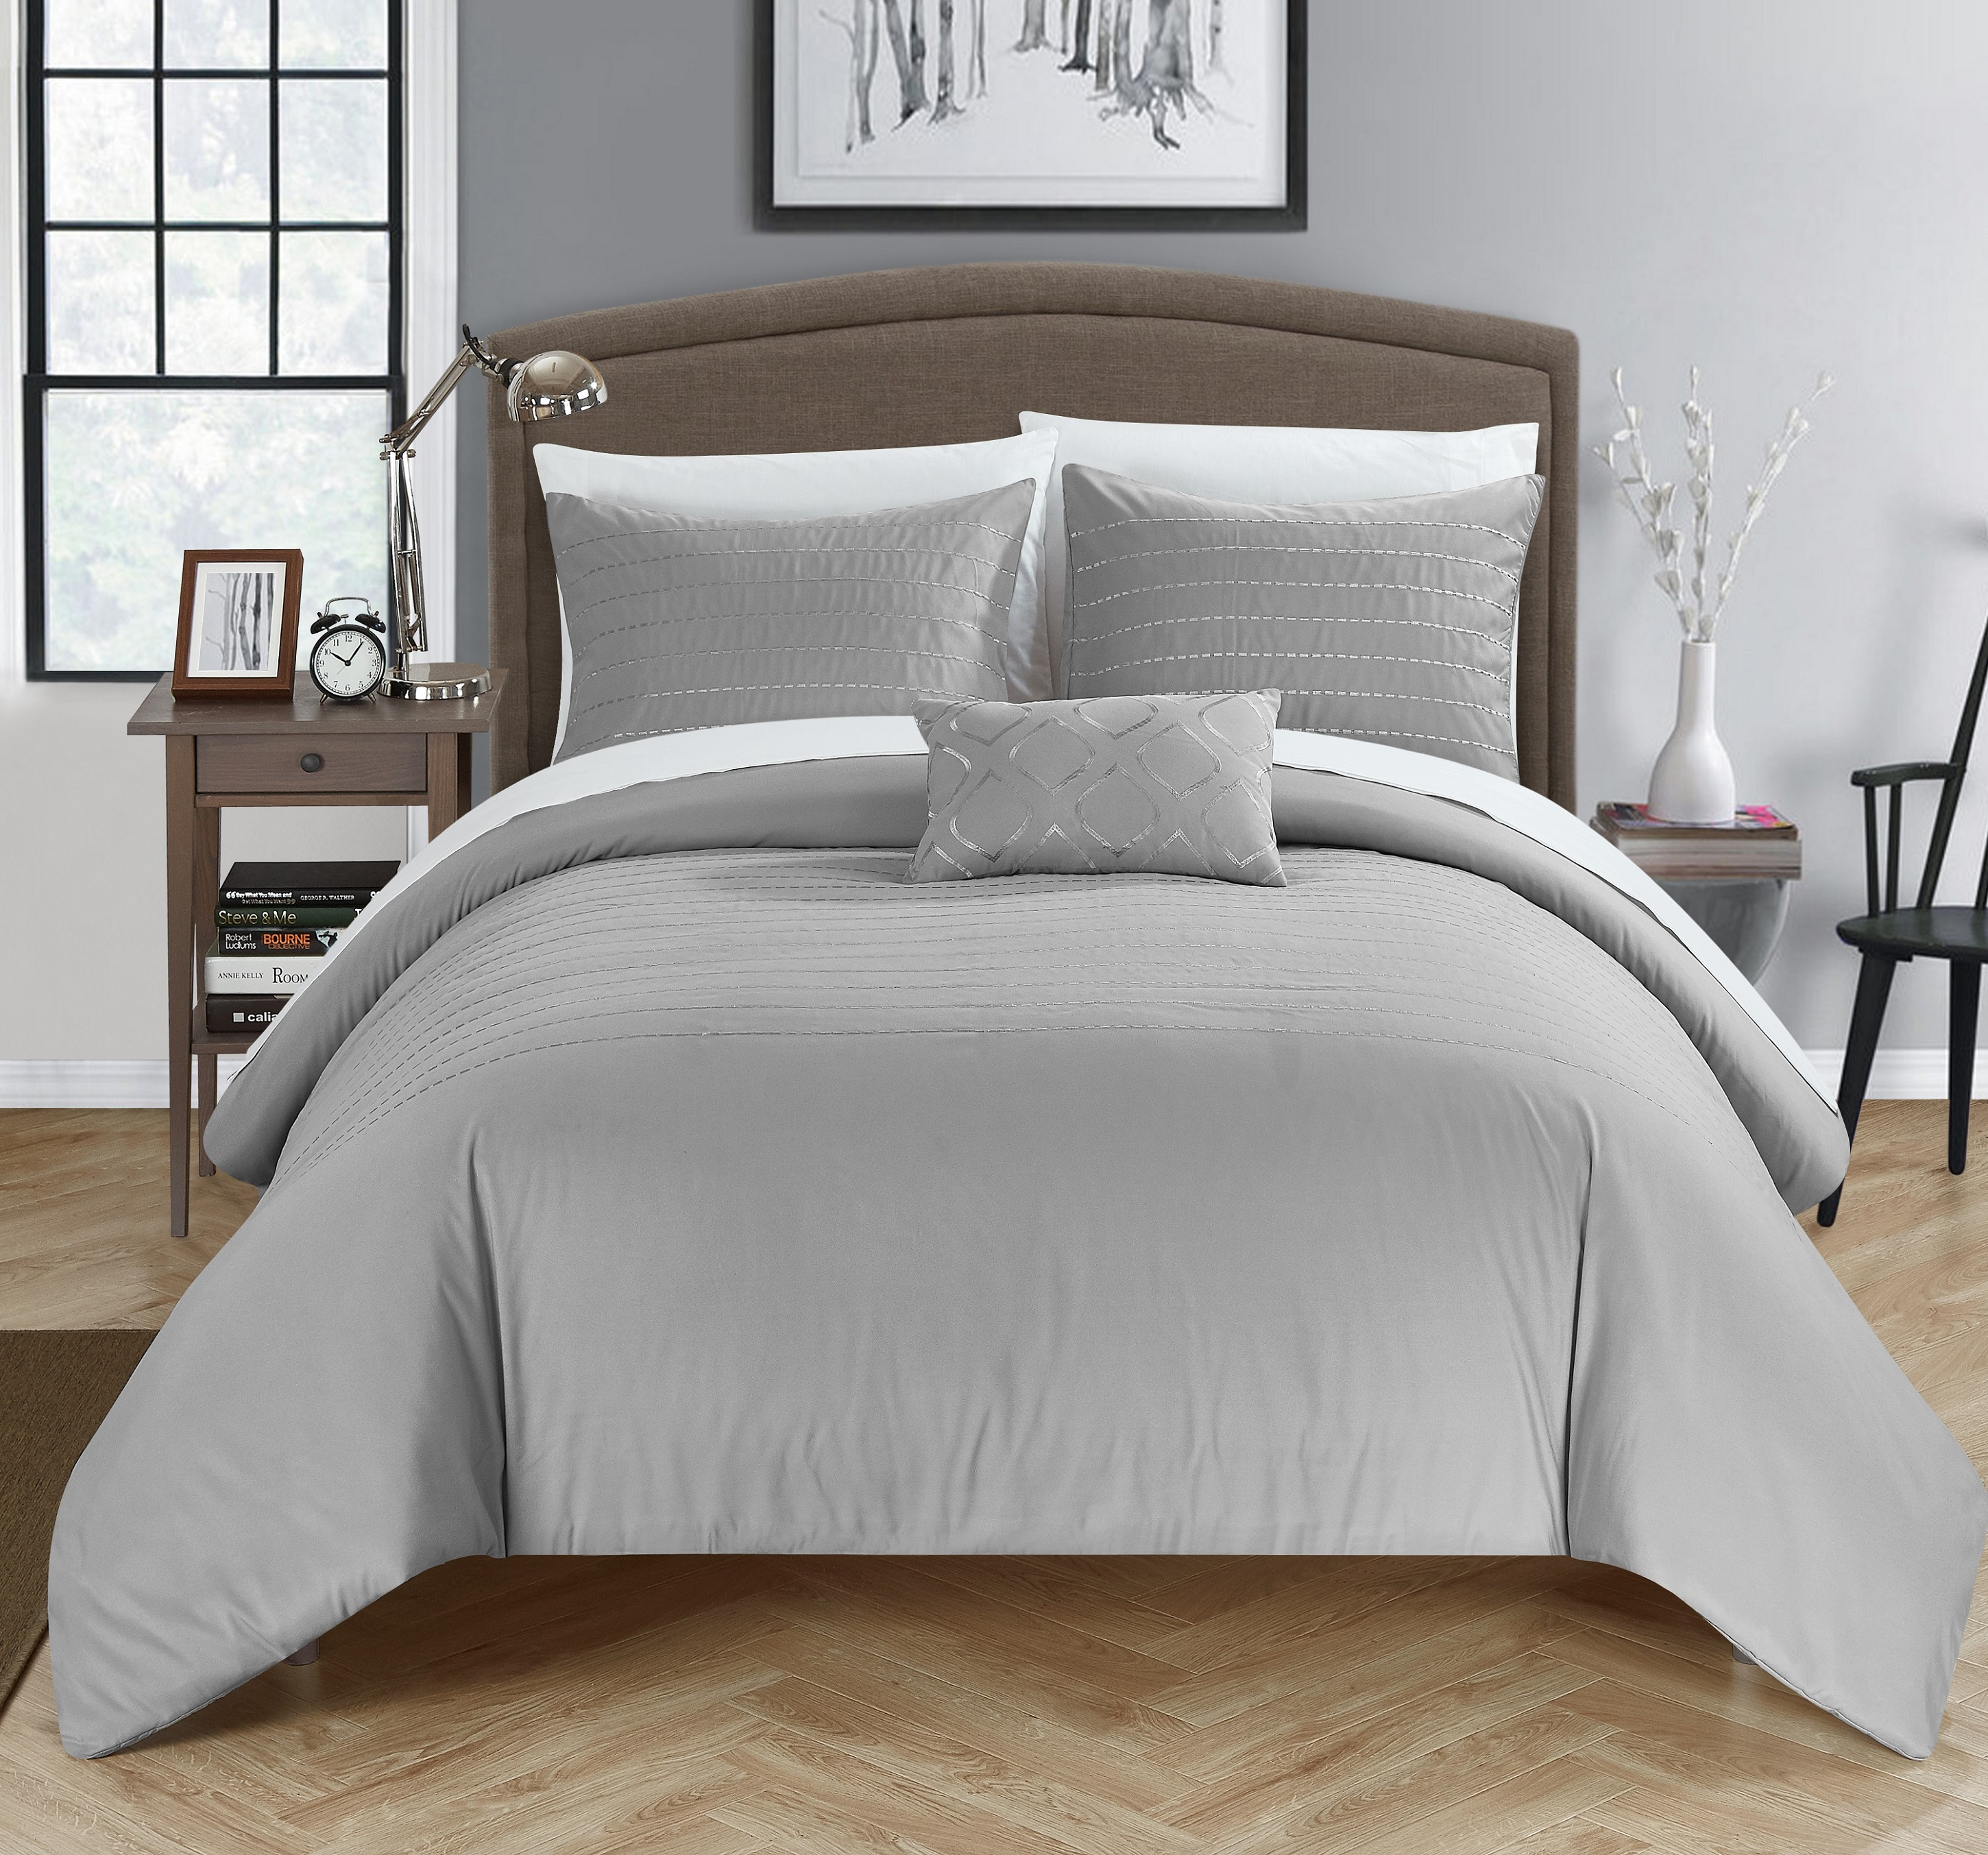 Chic Home 8-Piece Kingston Super Soft Microfiber Stitch Embroidered Bed In a Bag Duvet Set with White Sheets included